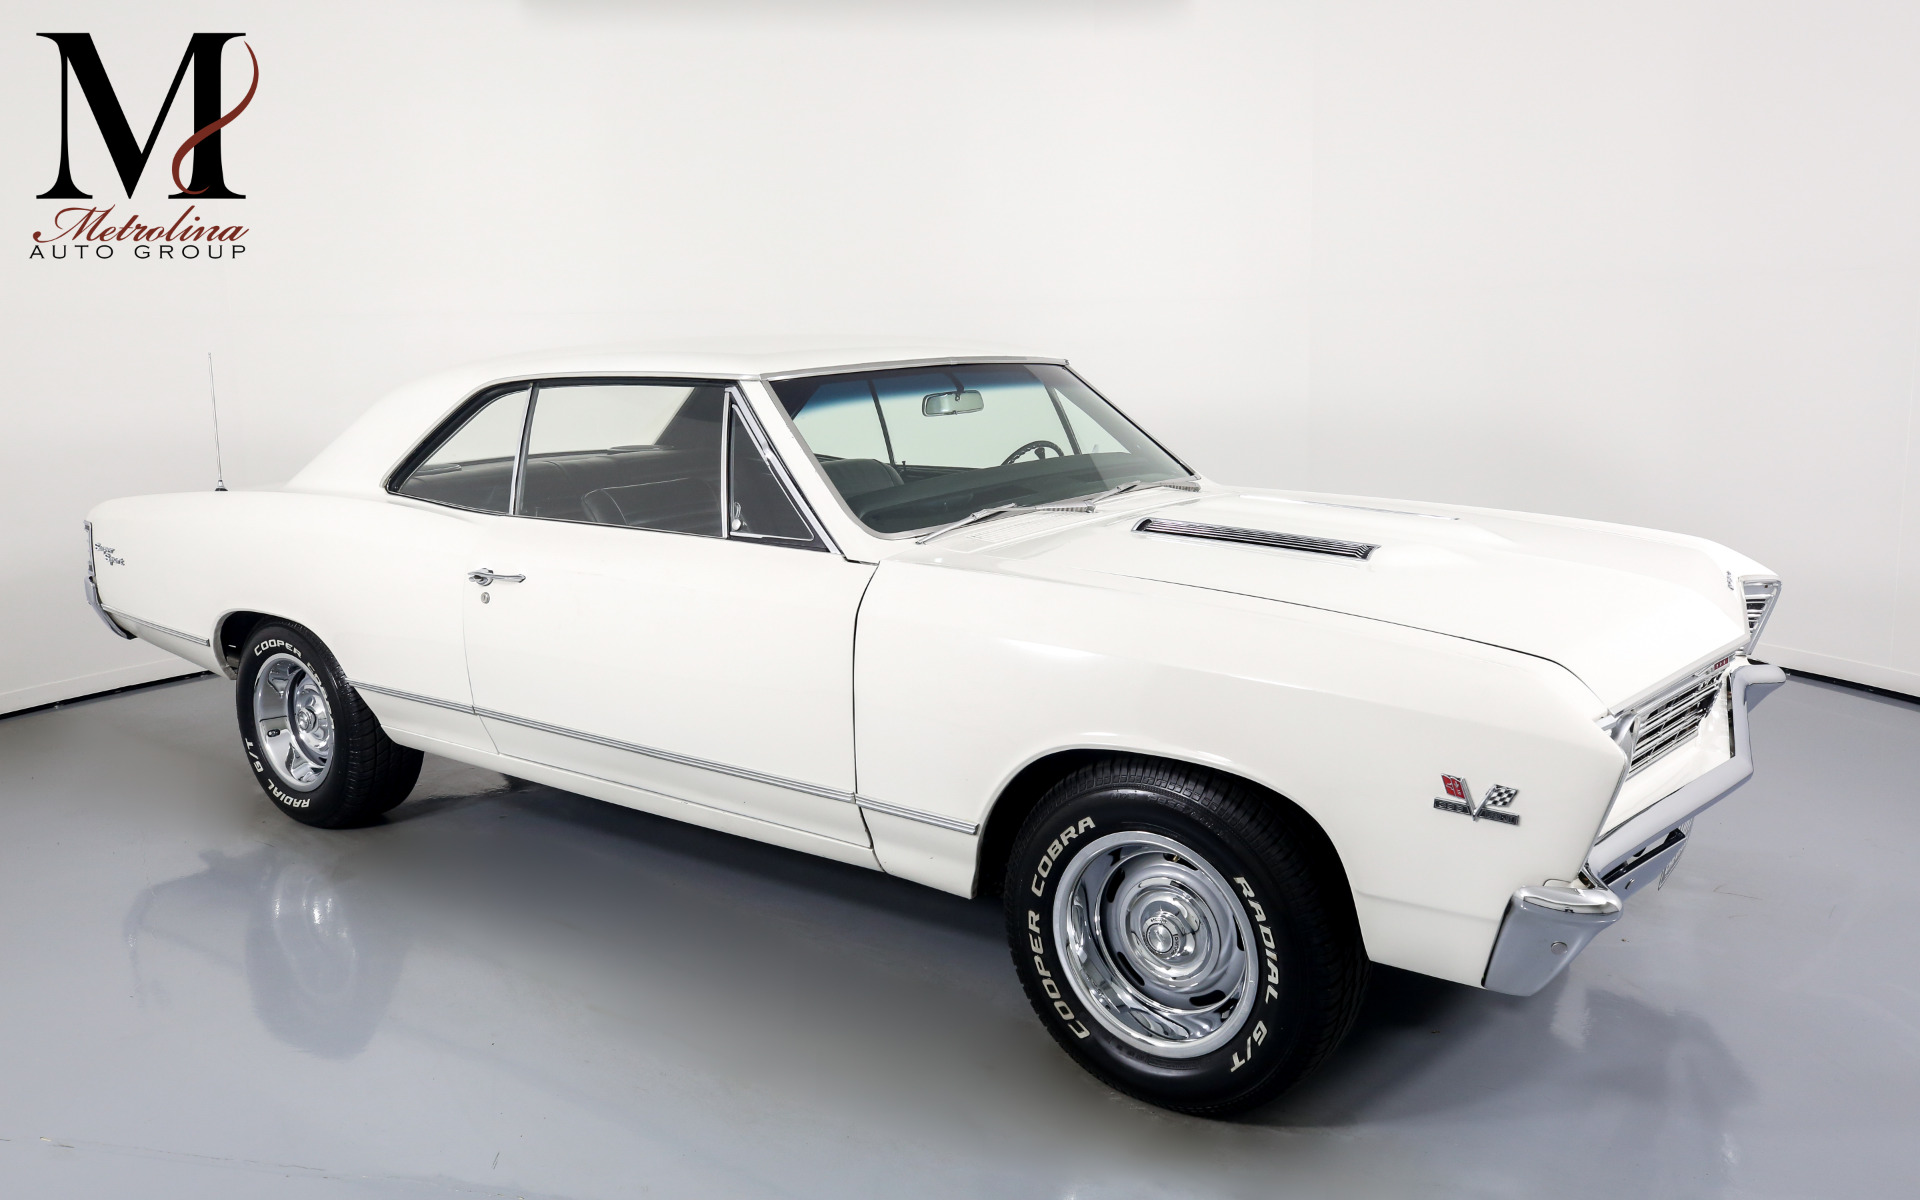 Used 1967 CHEVROLET SUPERSPORT 396 for sale $69,996 at Metrolina Auto Group in Charlotte NC 28217 - 1